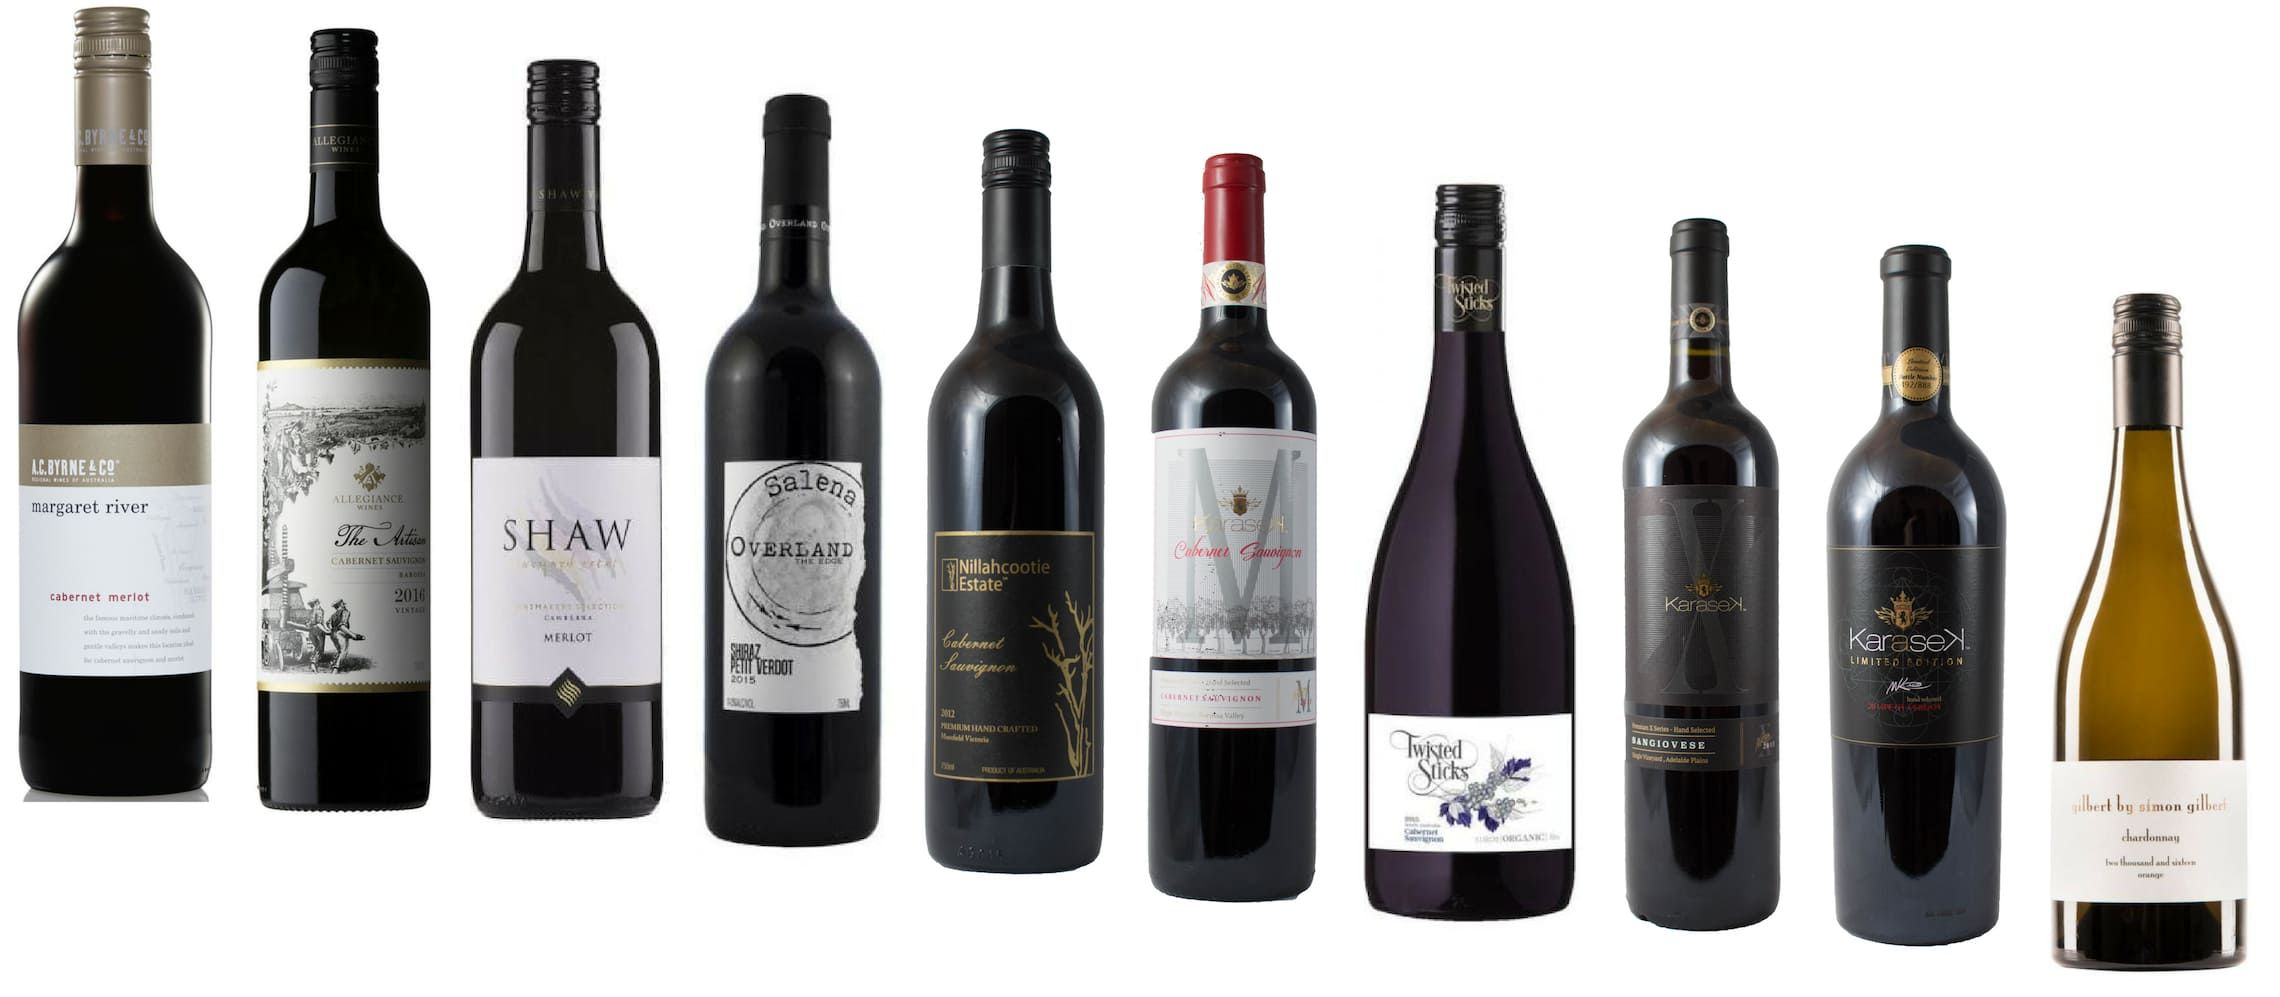 Photo for: Top 10 Australian Wines That You Should Not Miss in 2019